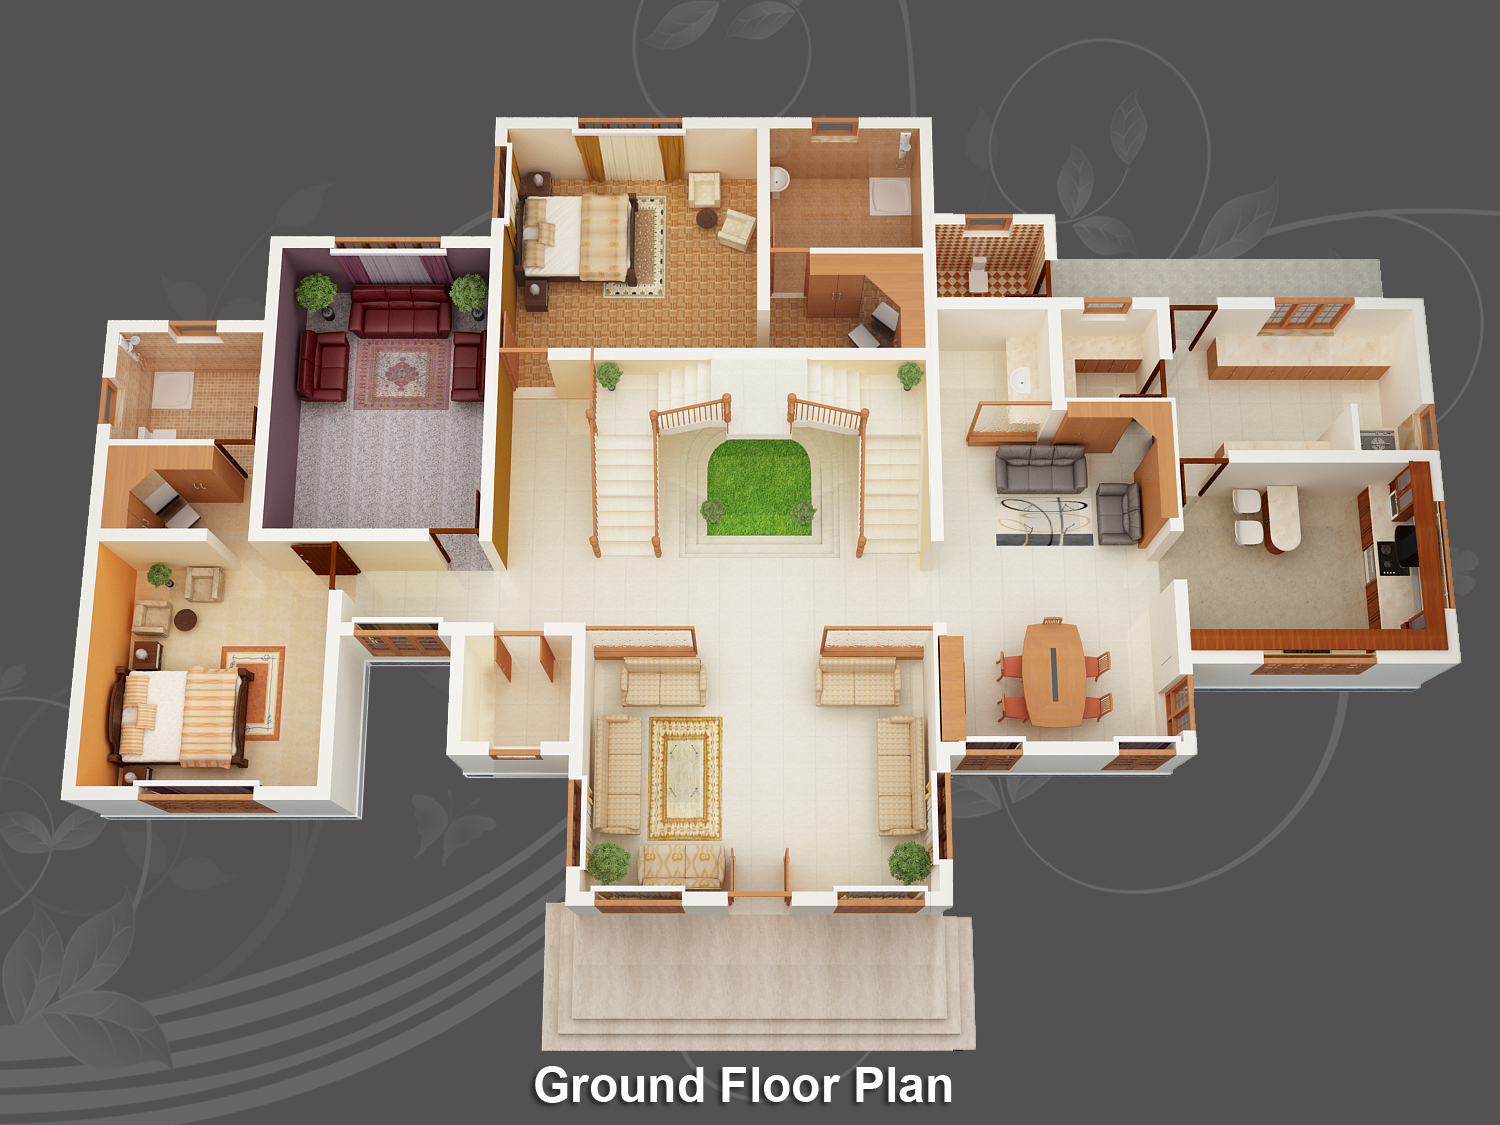 Evens construction pvt ltd 3d house plan 20 05 2011 Build house online 3d free